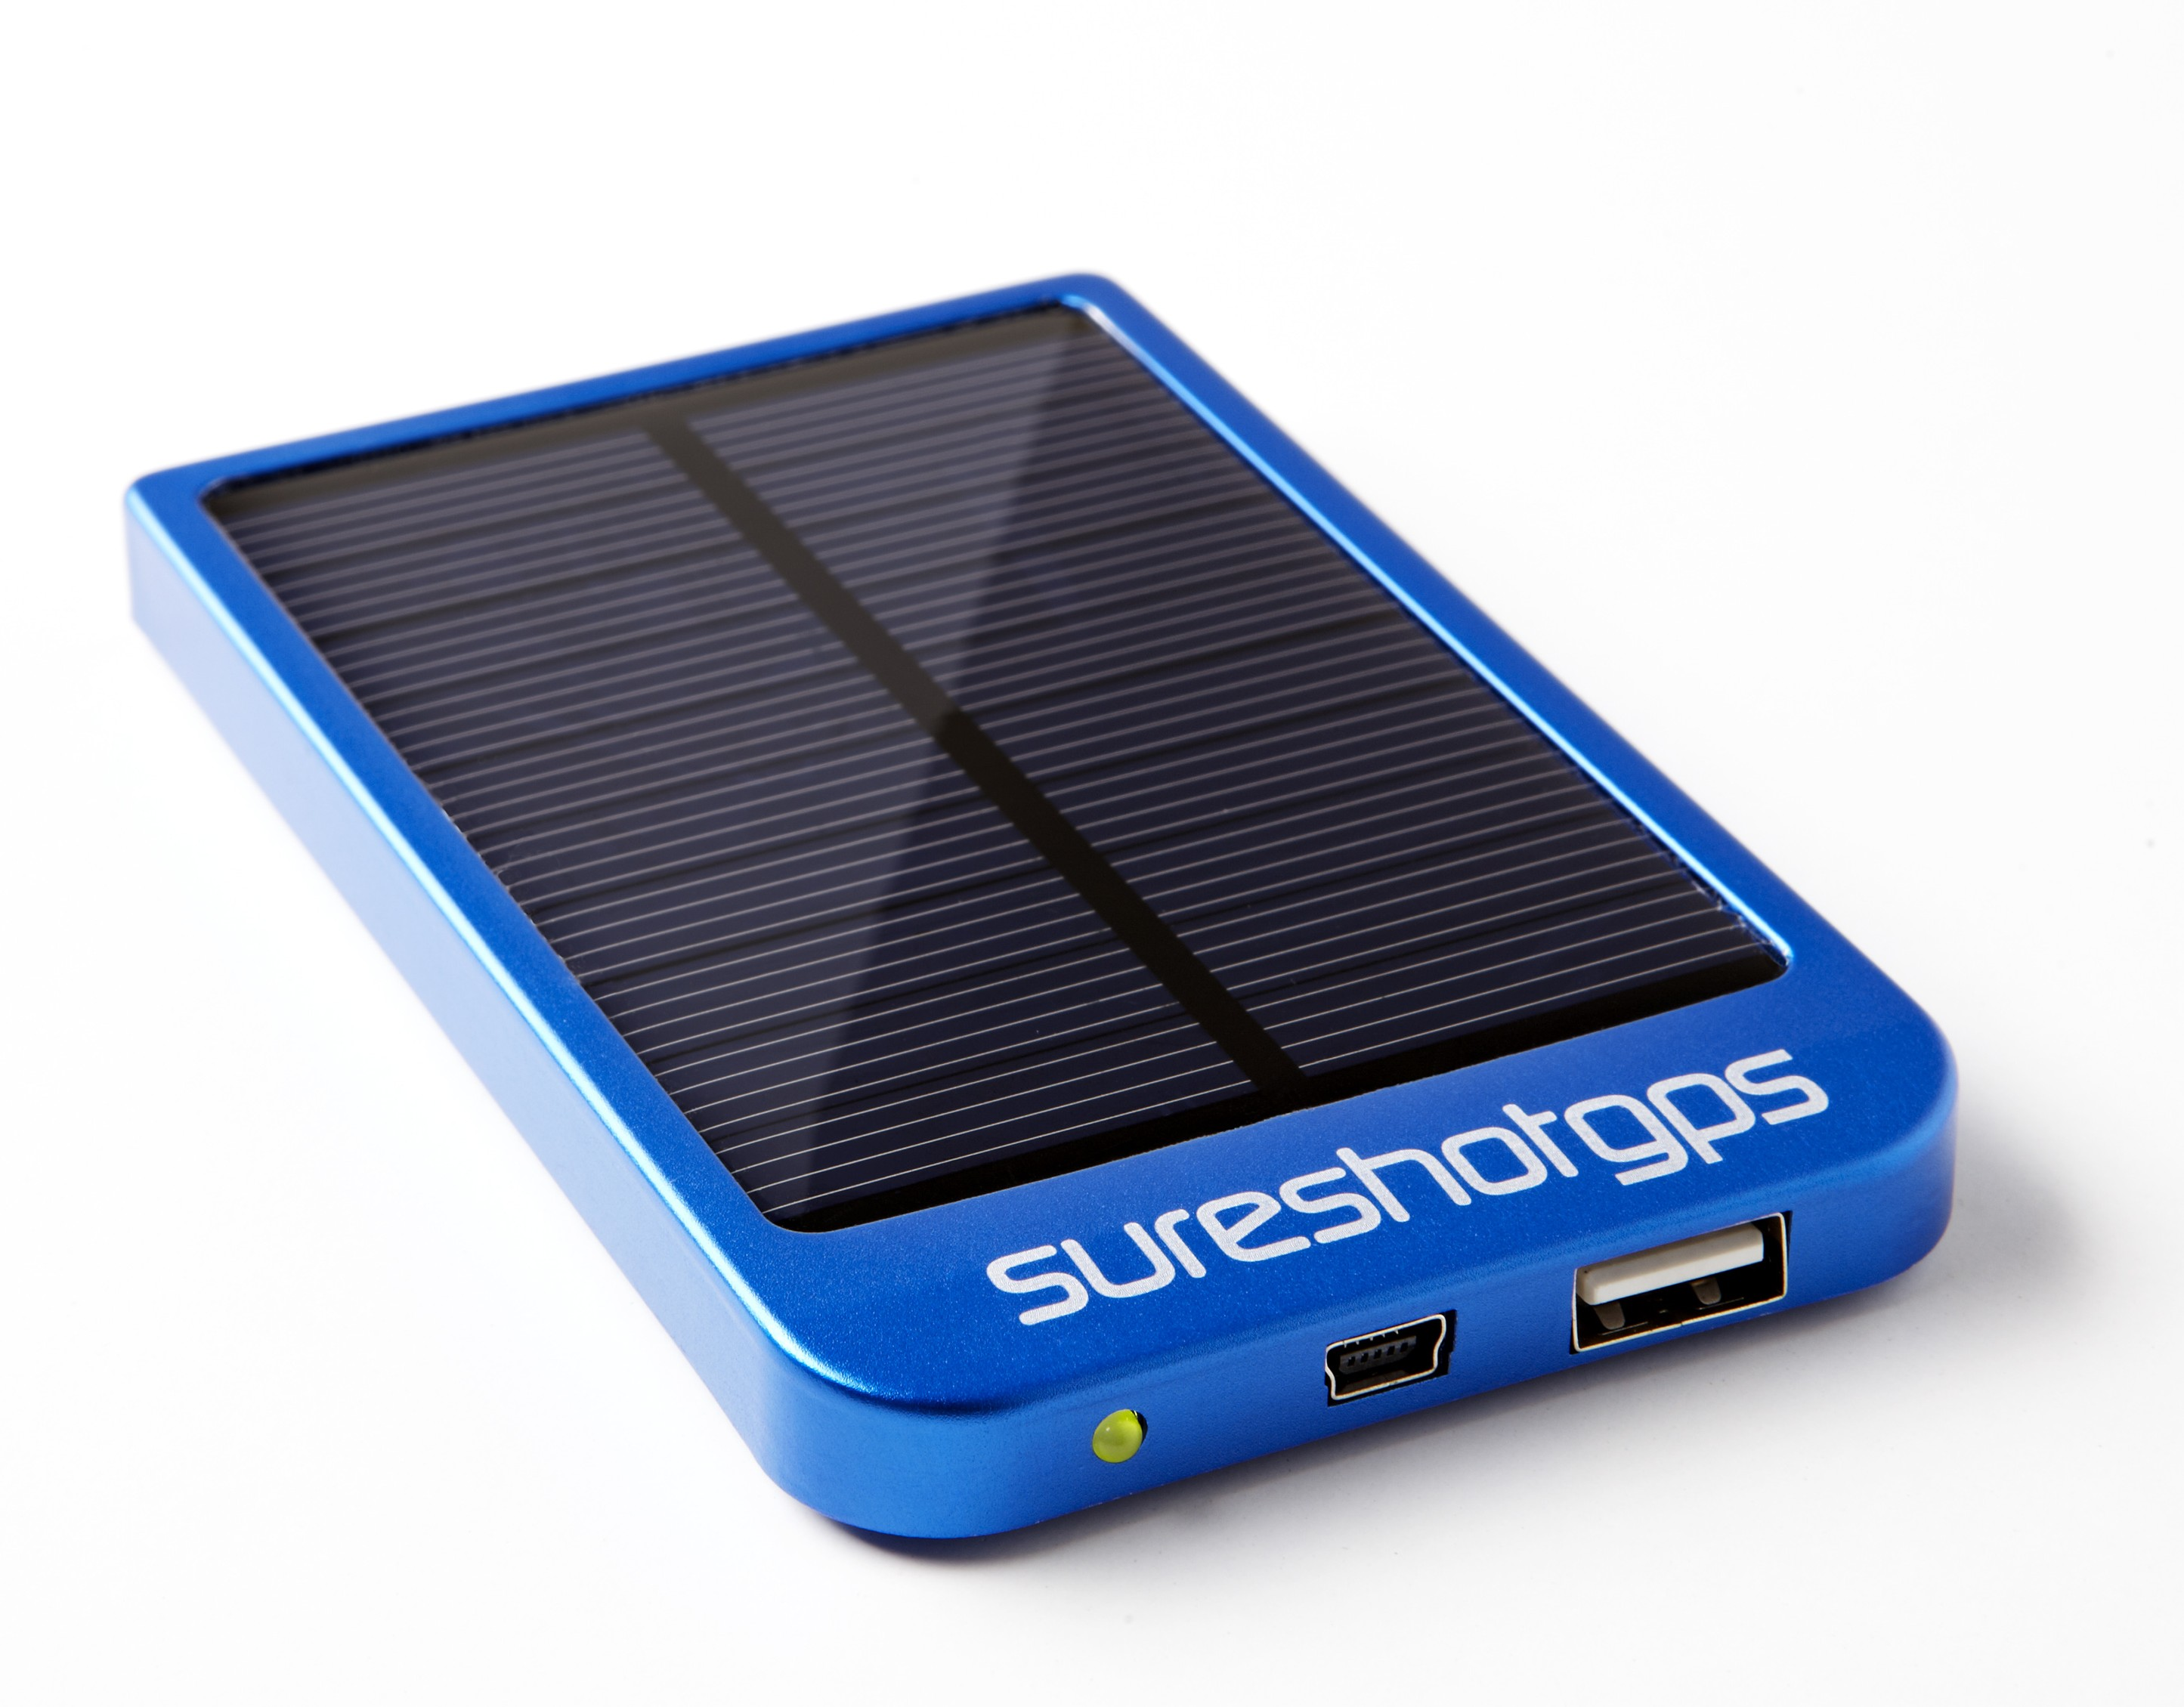 Sureshotgps SS Solar Power Pack Blue Flat